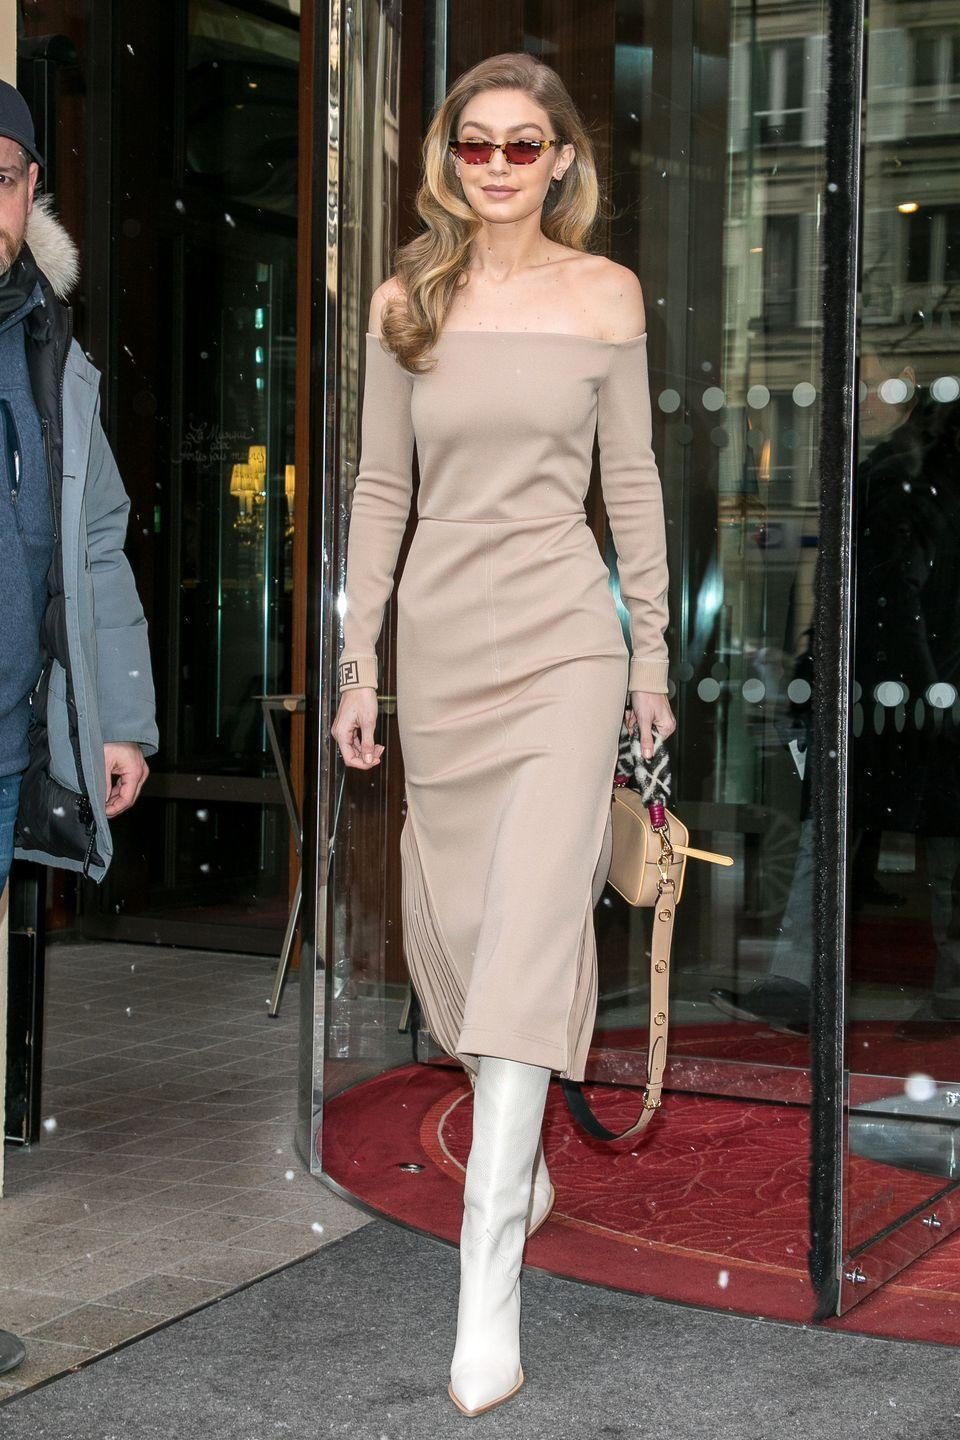 """<p>In a nude off-the-shoulder midi dress, small cat eye tortoiseshell sunglasses from her latest <a href=""""https://www.vogue-eyewear.com/us/gigi-hadid-collection"""" rel=""""nofollow noopener"""" target=""""_blank"""" data-ylk=""""slk:Vogue Eyewear collection"""" class=""""link rapid-noclick-resp"""">Vogue Eyewear collection</a>, a fuzzy-handled <a href=""""https://www.fendi.com/us/woman/new-arrivals?gclid=CjwKCAiAoNTUBRBUEiwAWje2loWOS-NJhGAdv6U9n2LCfSNzTkyYjssWn4qvRhYNpFfz1kTr_2JHOhoCW-gQAvD_BwE"""" rel=""""nofollow noopener"""" target=""""_blank"""" data-ylk=""""slk:Fendi"""" class=""""link rapid-noclick-resp"""">Fendi</a> bag, and white leather pointed-toe <a href=""""https://www.fendi.com/us/woman/new-arrivals?gclid=CjwKCAiAoNTUBRBUEiwAWje2loWOS-NJhGAdv6U9n2LCfSNzTkyYjssWn4qvRhYNpFfz1kTr_2JHOhoCW-gQAvD_BwE"""" rel=""""nofollow noopener"""" target=""""_blank"""" data-ylk=""""slk:Fendi"""" class=""""link rapid-noclick-resp"""">Fendi</a> boots from the Fall 2018 collection while out and about in Paris. </p>"""